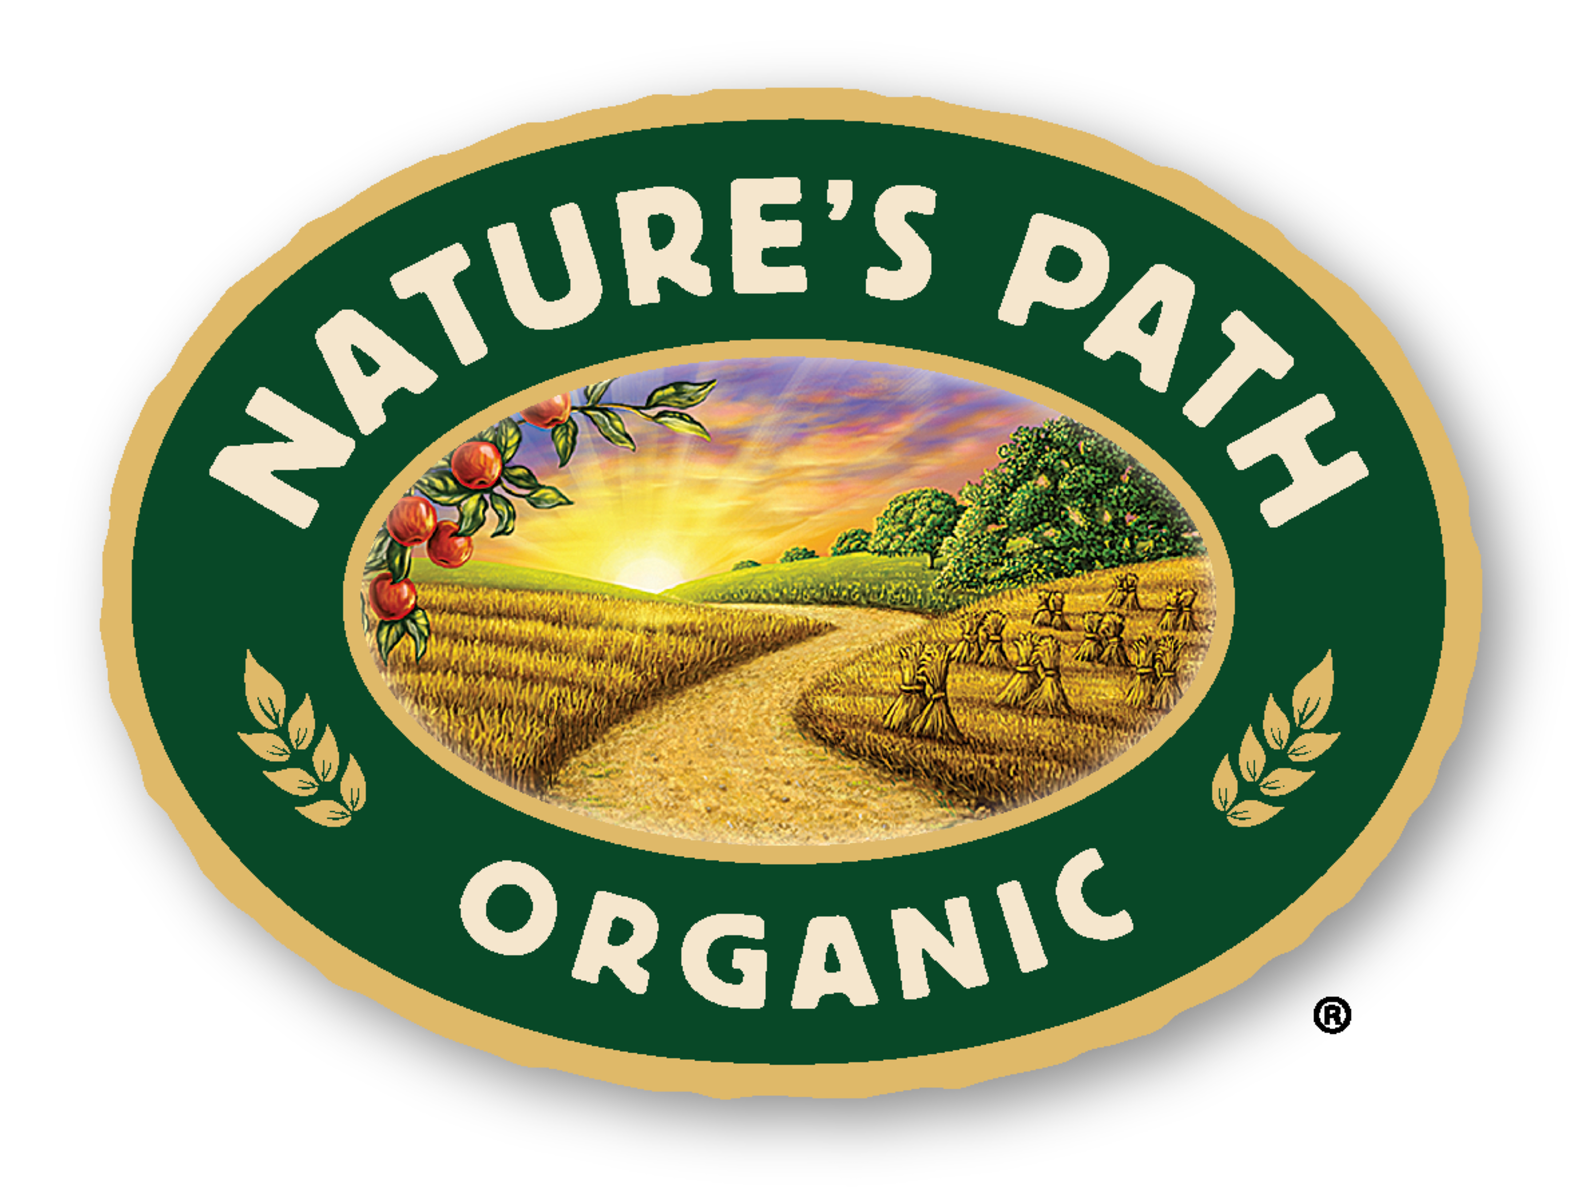 Favorite Cereal: Nature's Path